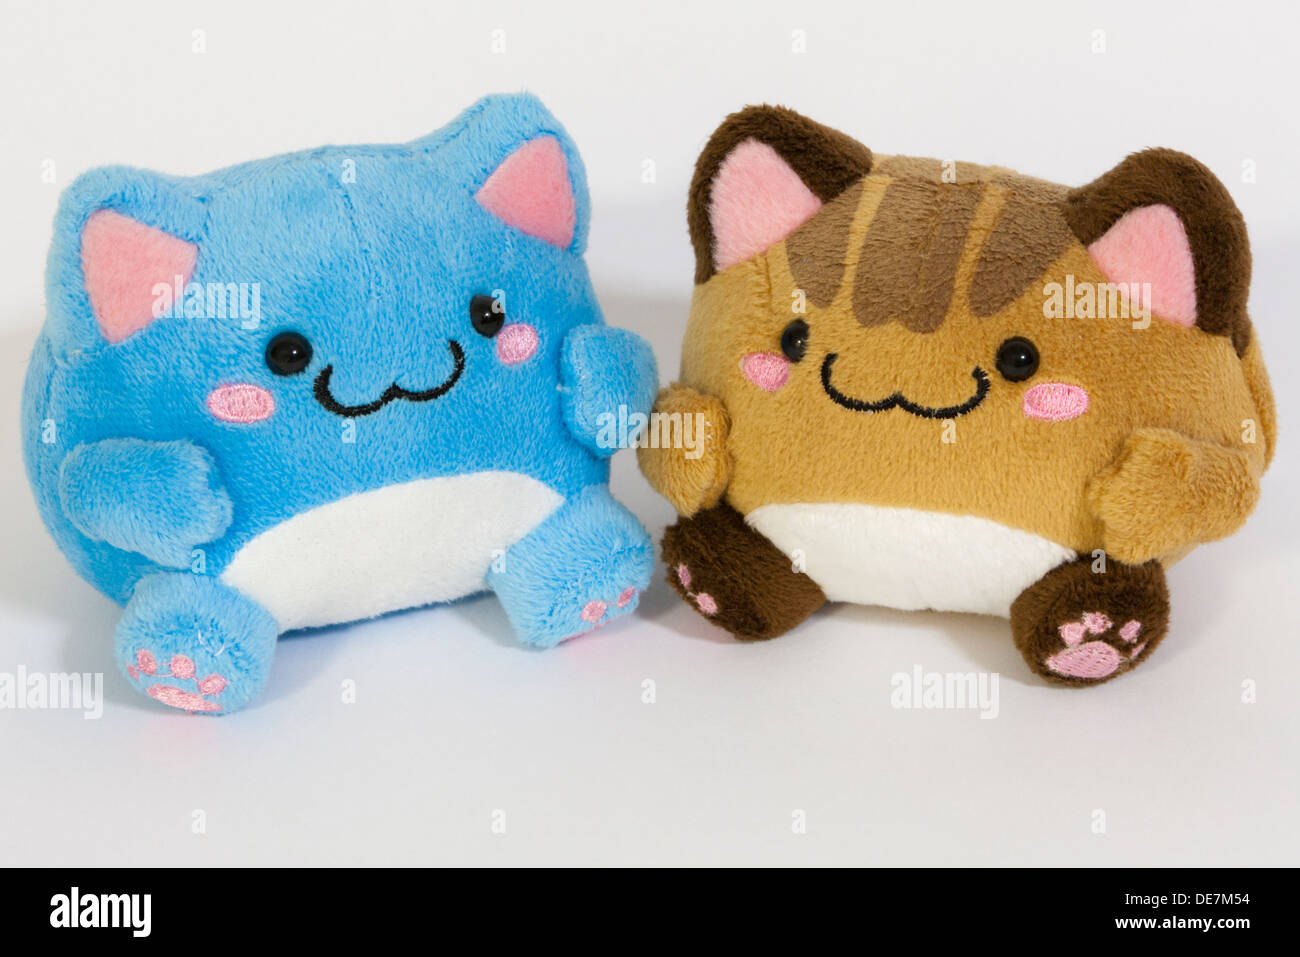 Two stuffed toys won from a claw machine - Stock Image